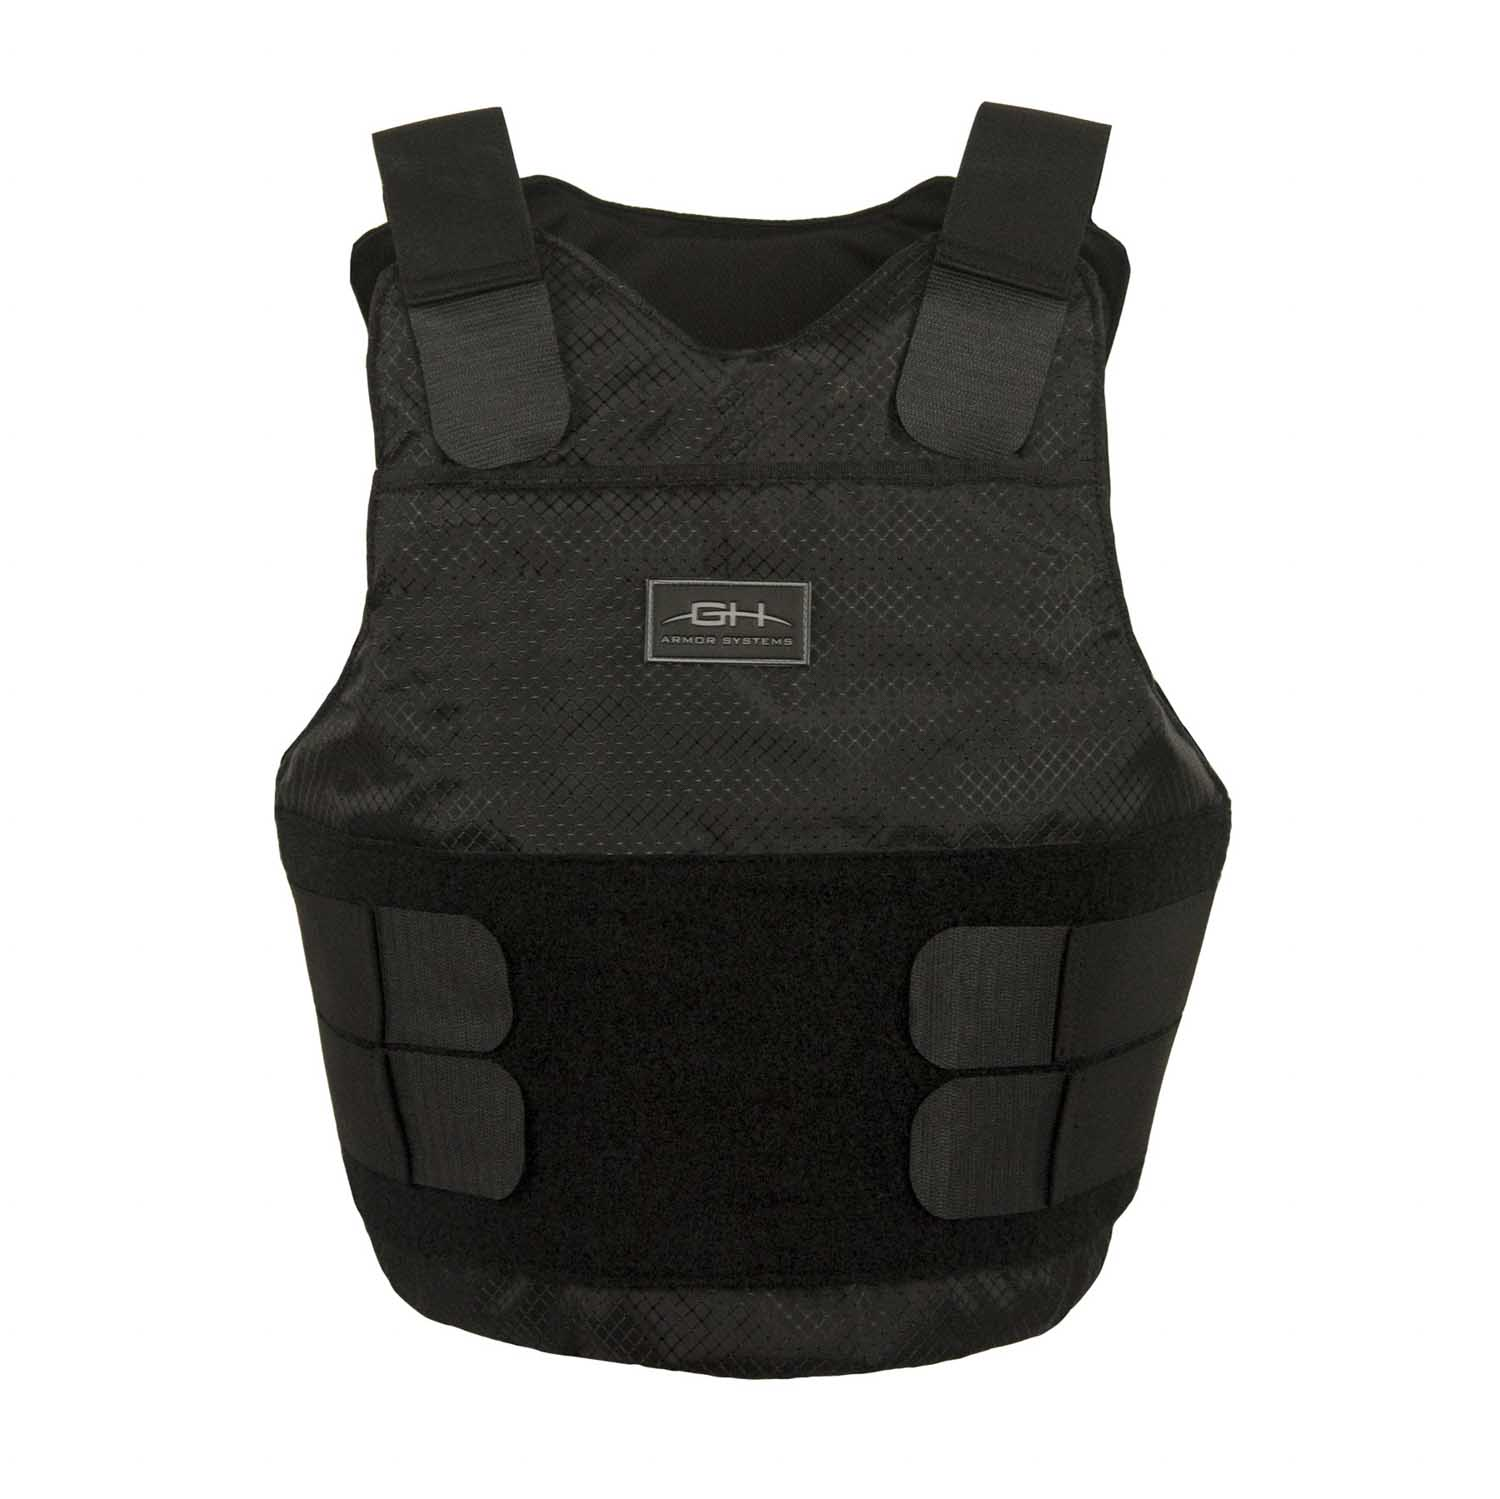 GH Armor LiteX IIIA Body Armor Package